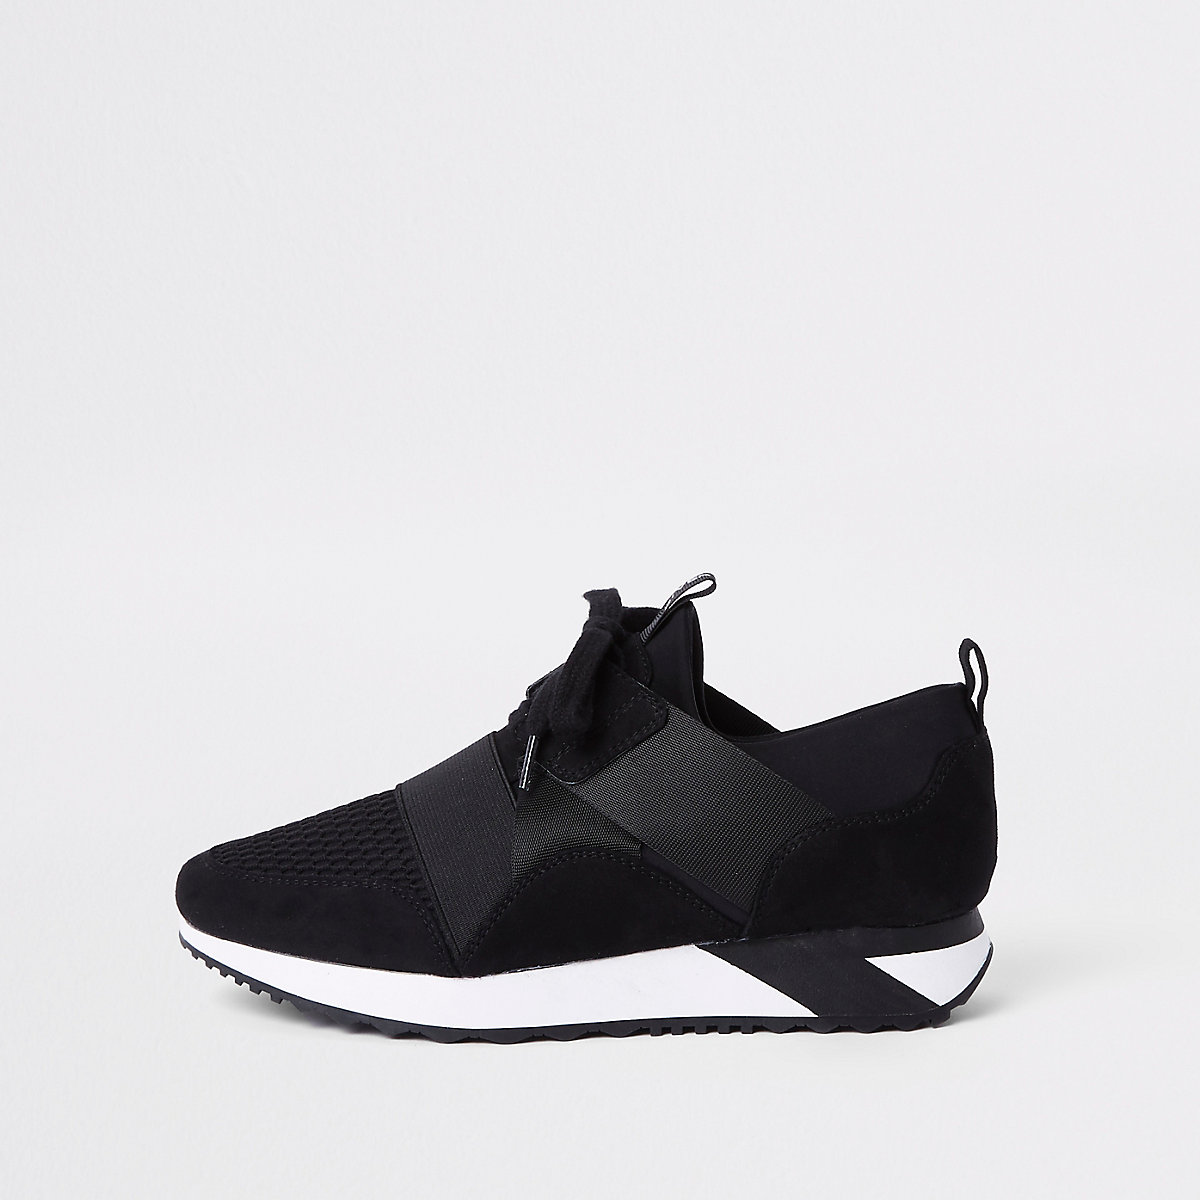 Black Elasticated lace-up runner sneakers